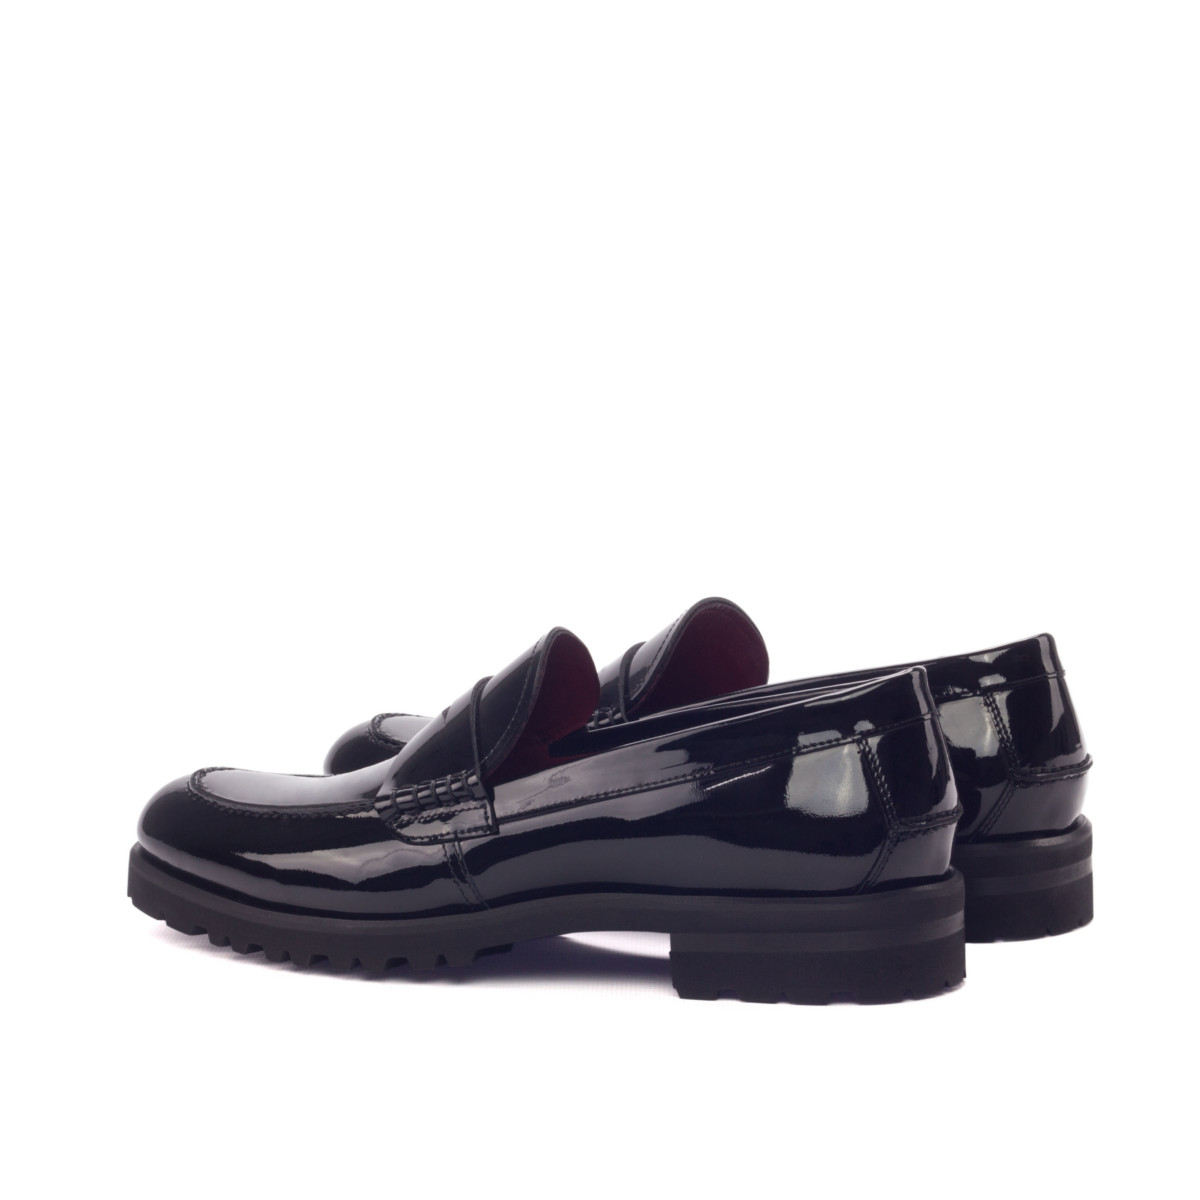 Black patent women's loafers